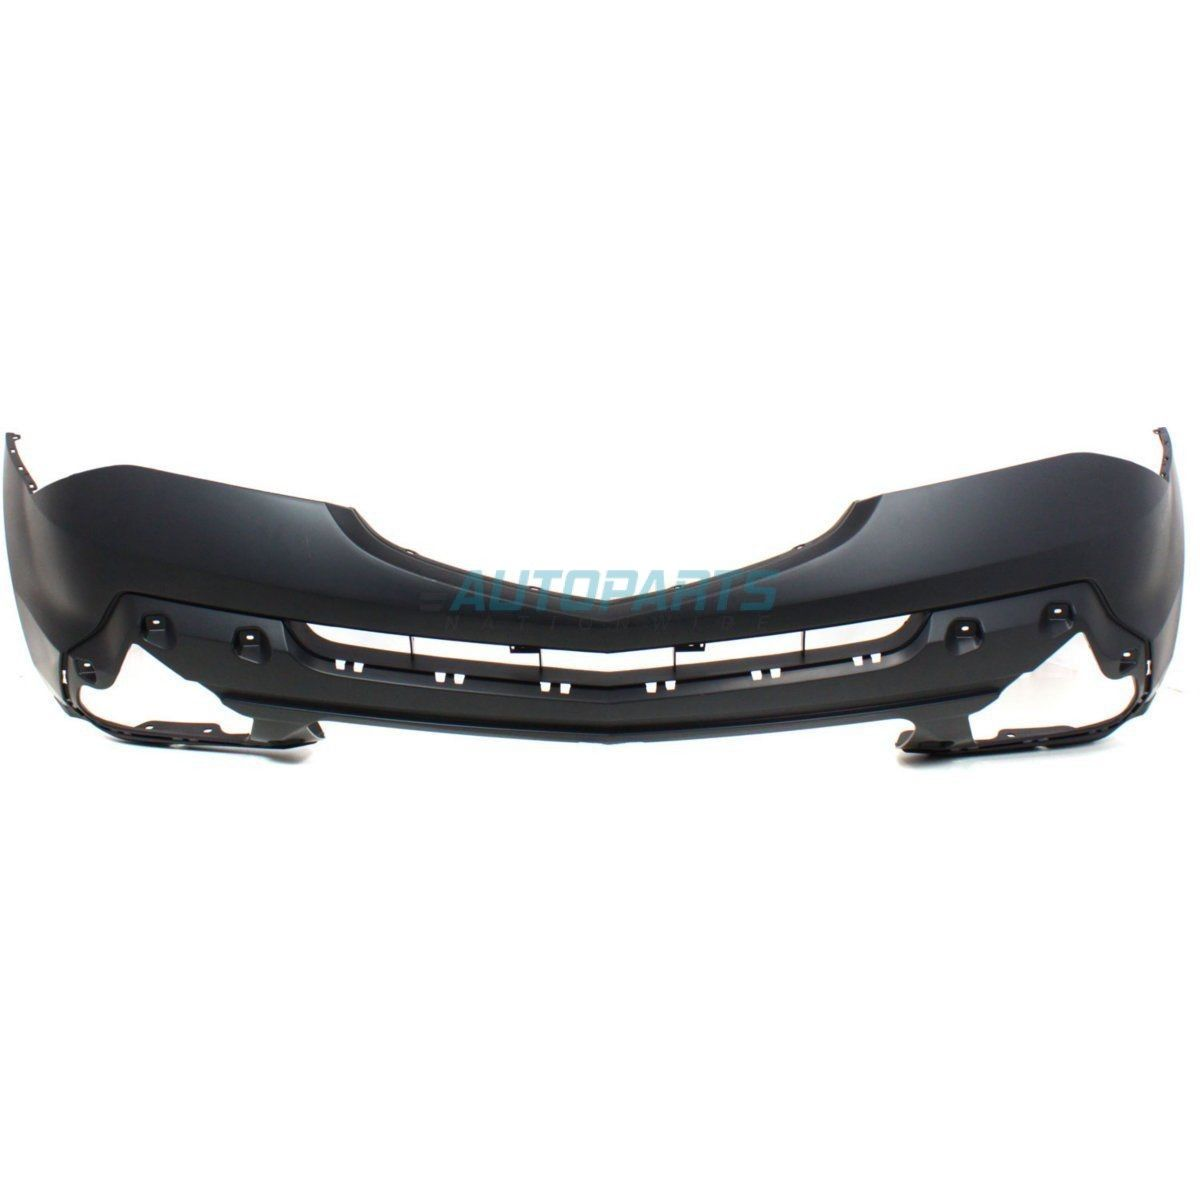 New Front Bumper Cover Primed Fits 2007-2009 Acura Mdx